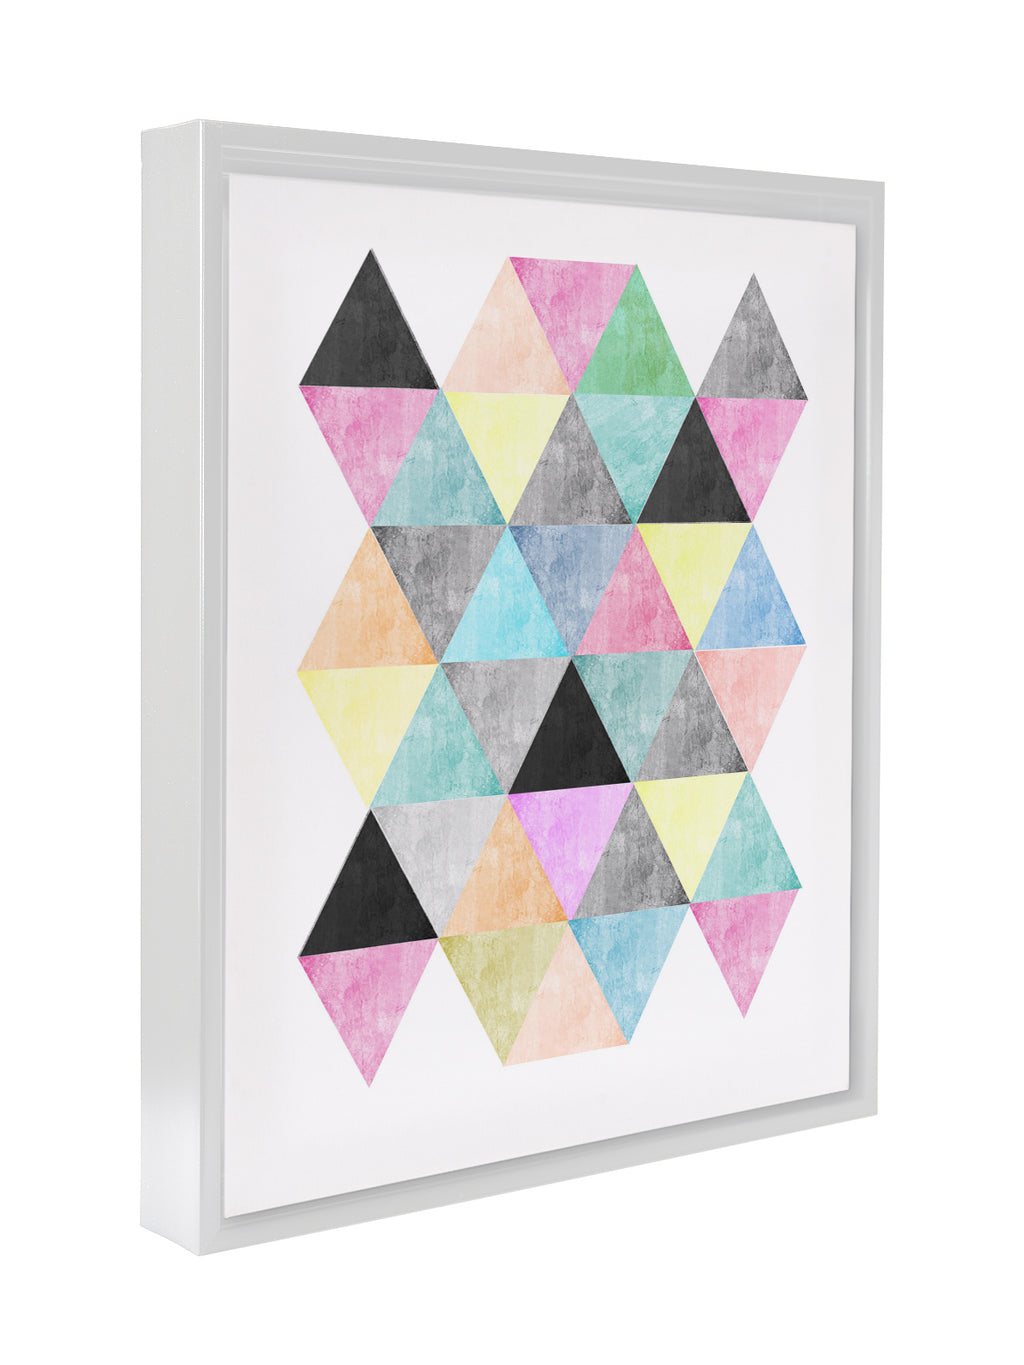 NORDIC TRIANGLES Premium Framed Gallery Wrap By Honeytree Prints